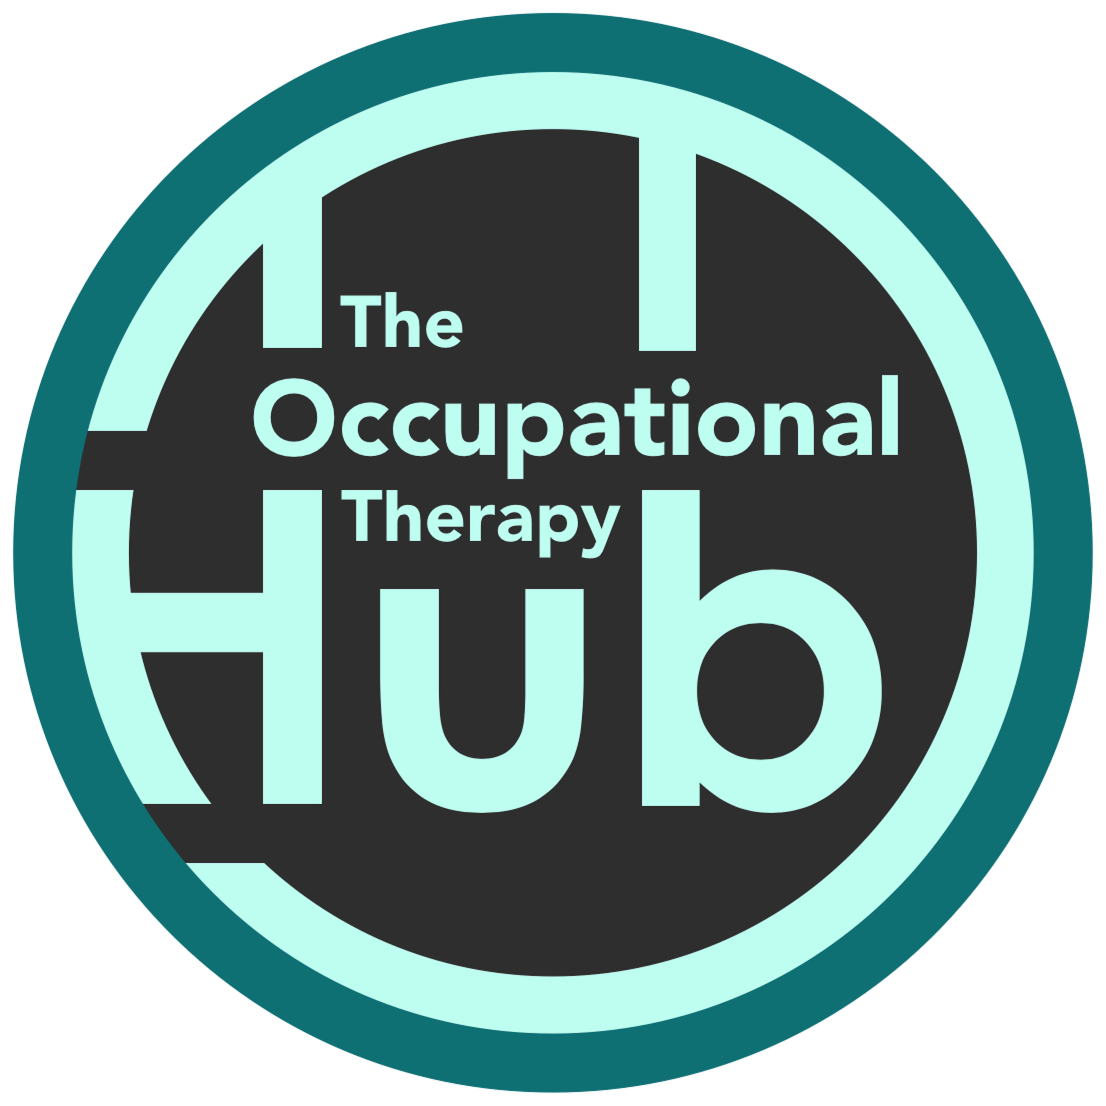 The Occupational Therapy Hub